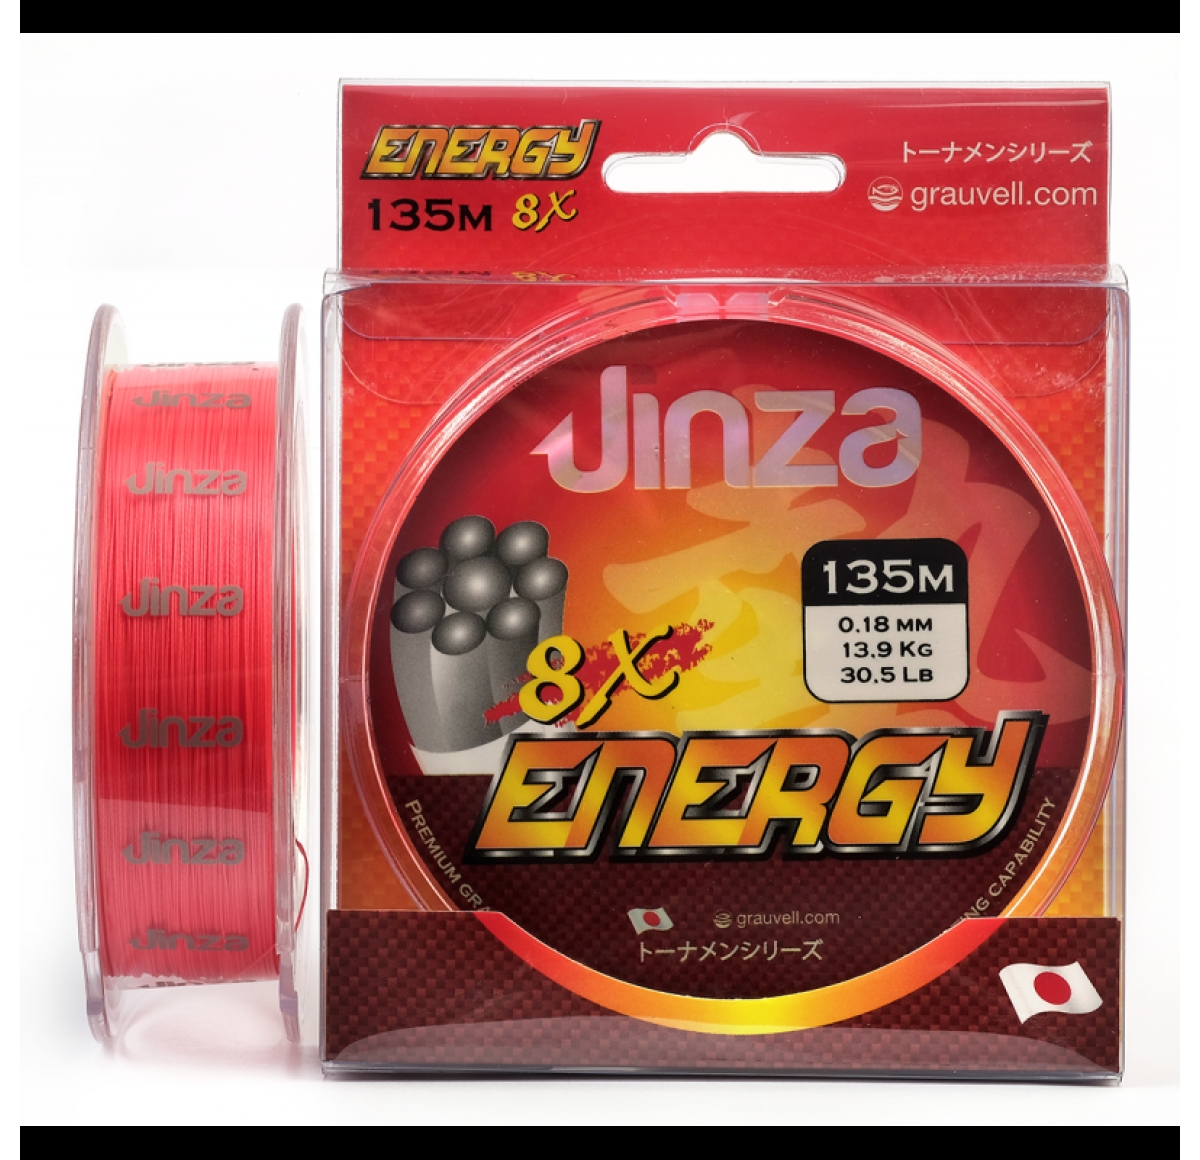 Grauvell Jinza Energy 135m 0.12mm